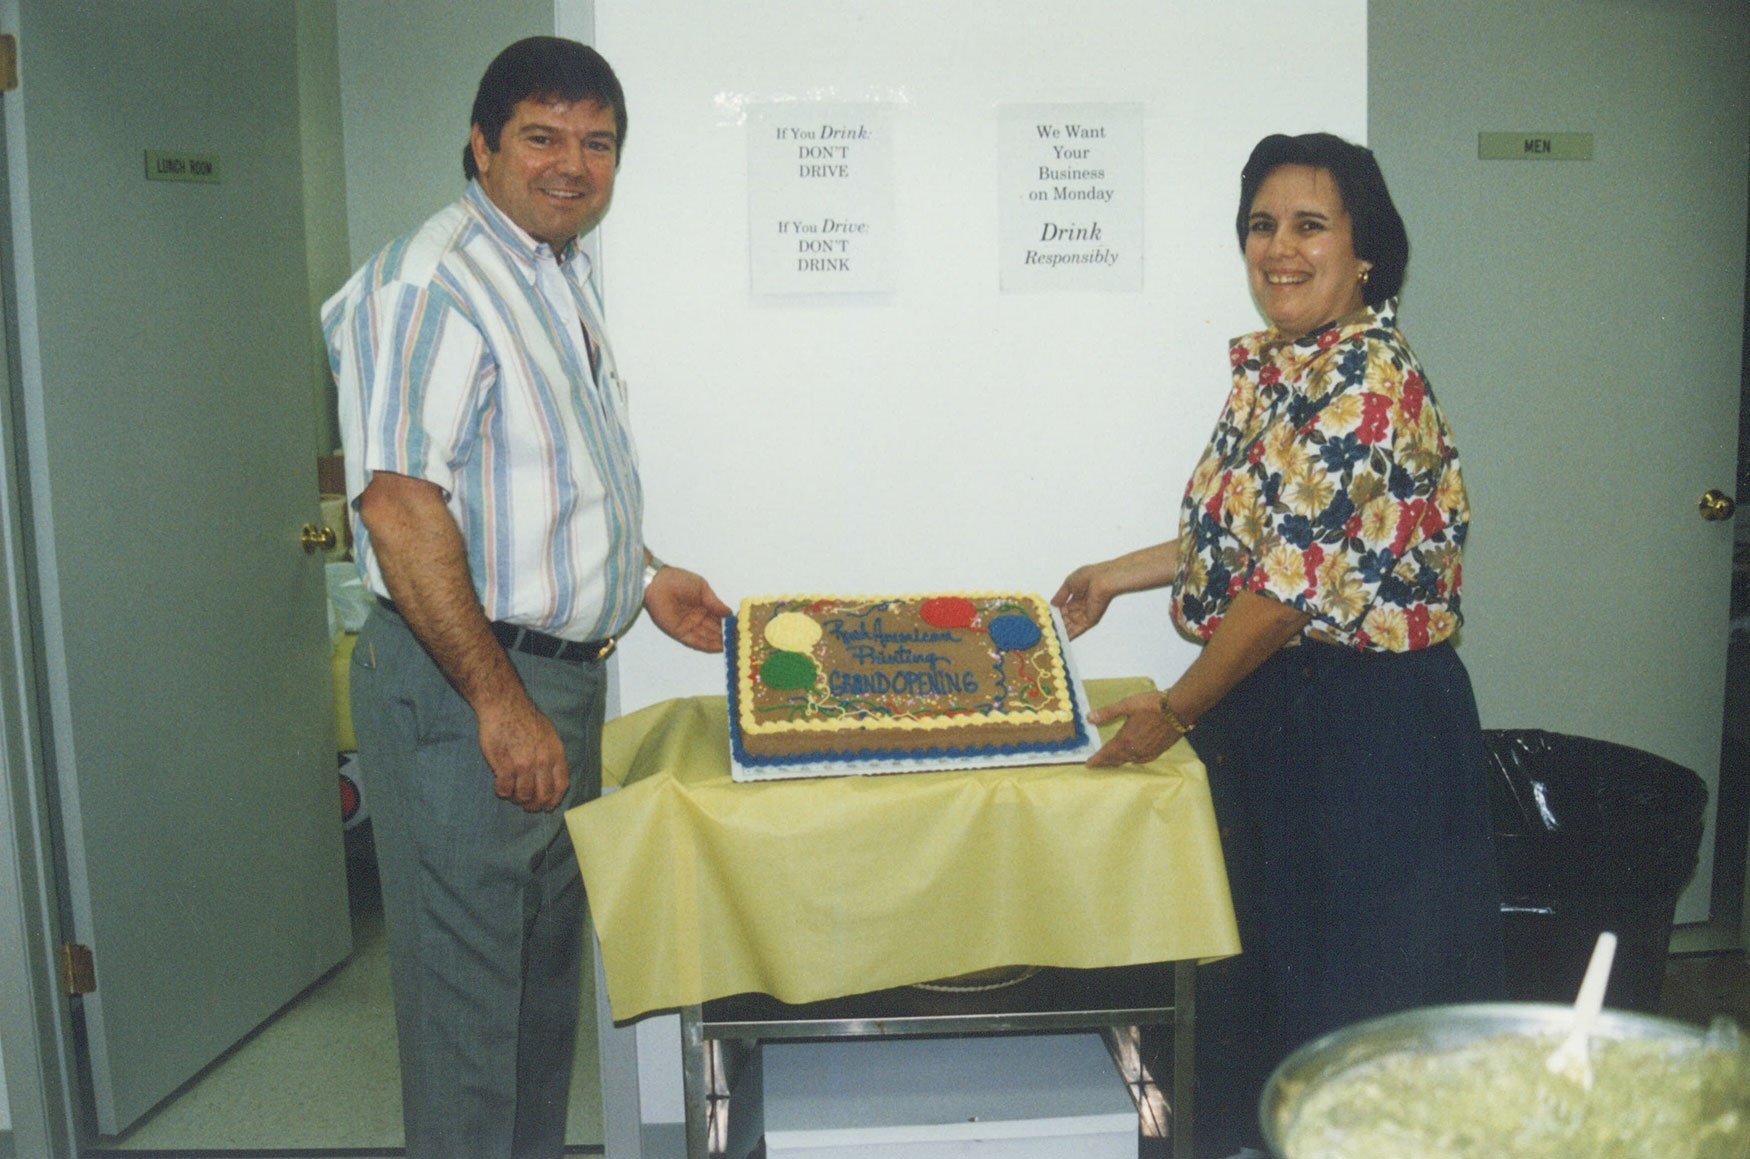 Grand Opening of New Location 1991